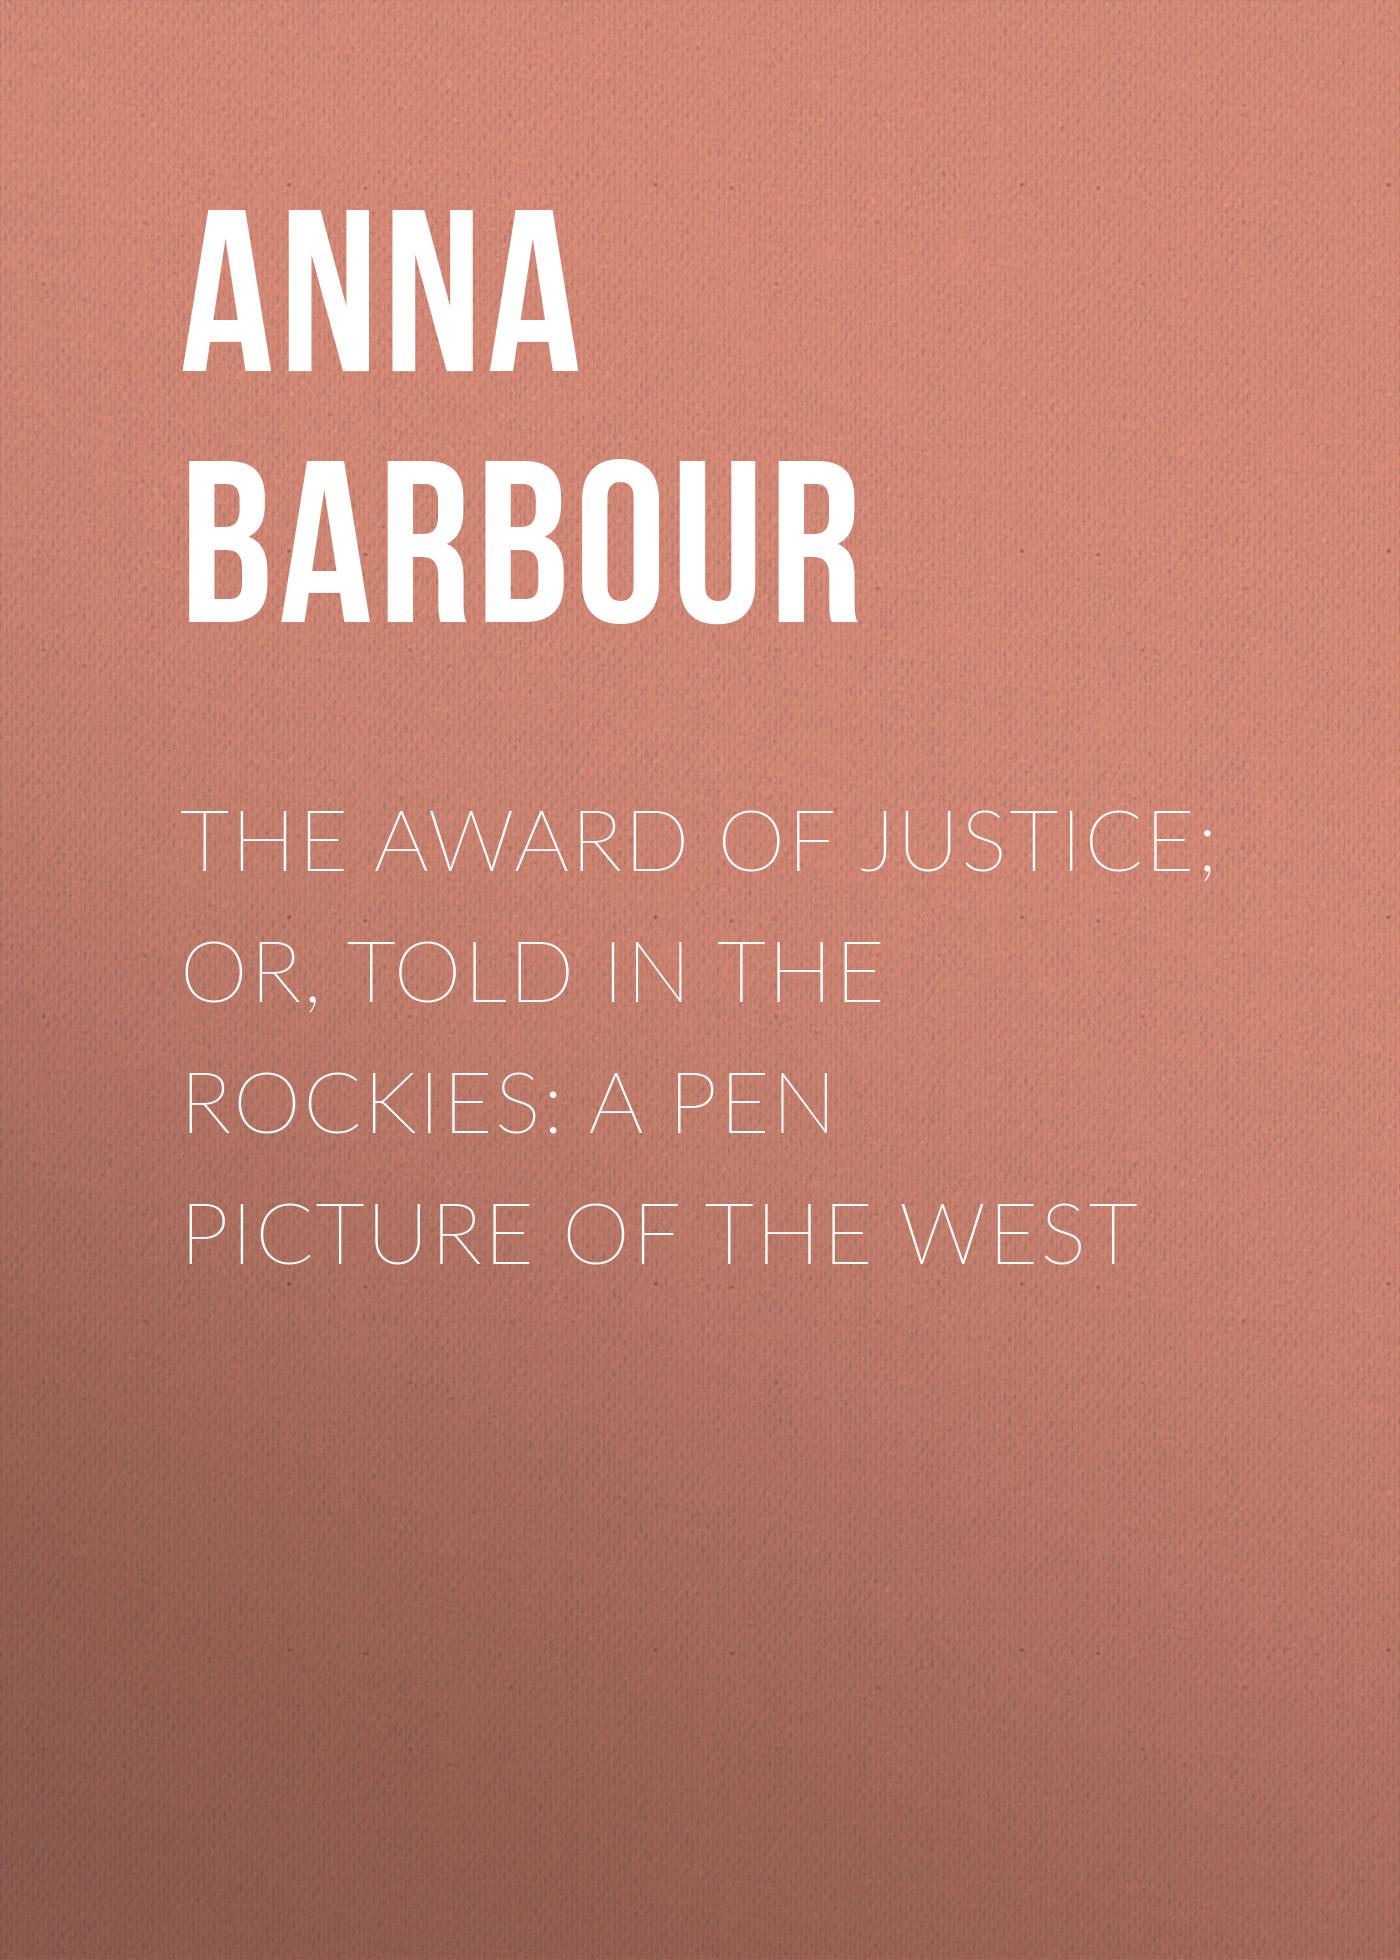 Barbour Anna Maynard The Award of Justice; Or, Told in the Rockies: A Pen Picture of the West rebecca harding davis life in the iron mills or the korl woman